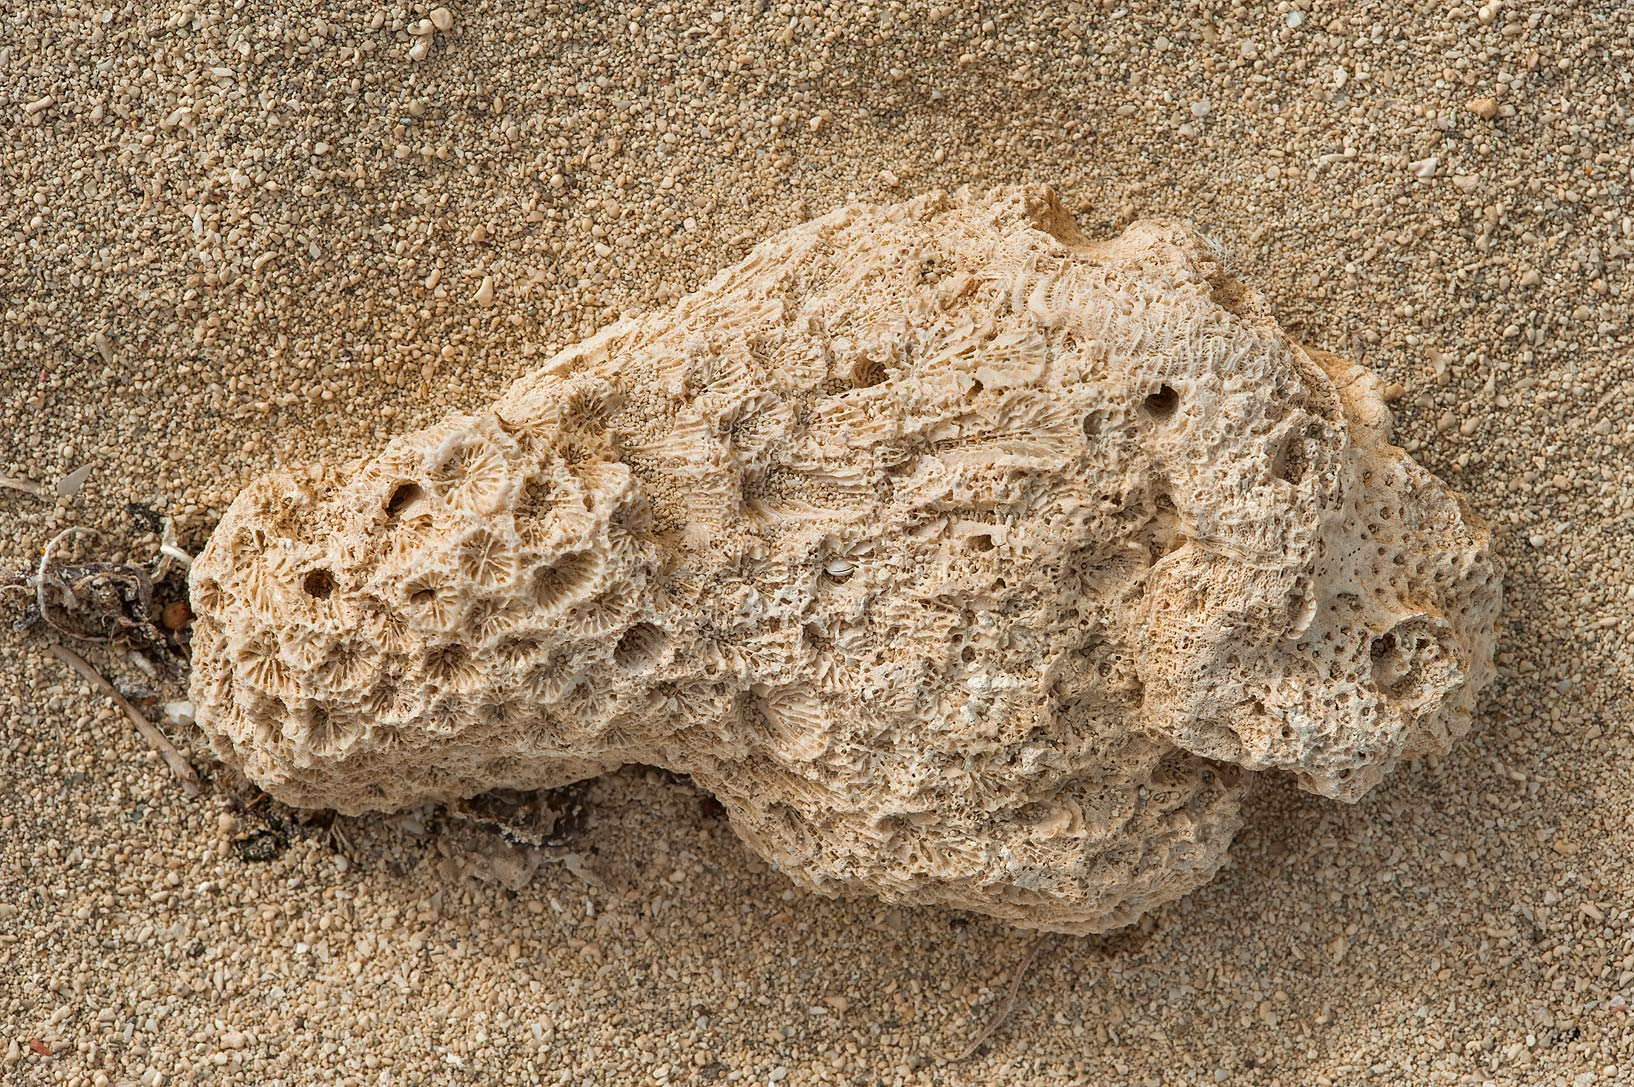 Dead coral on a beach of Umm Tays Island in Madinat Al Shamal area. Qatar